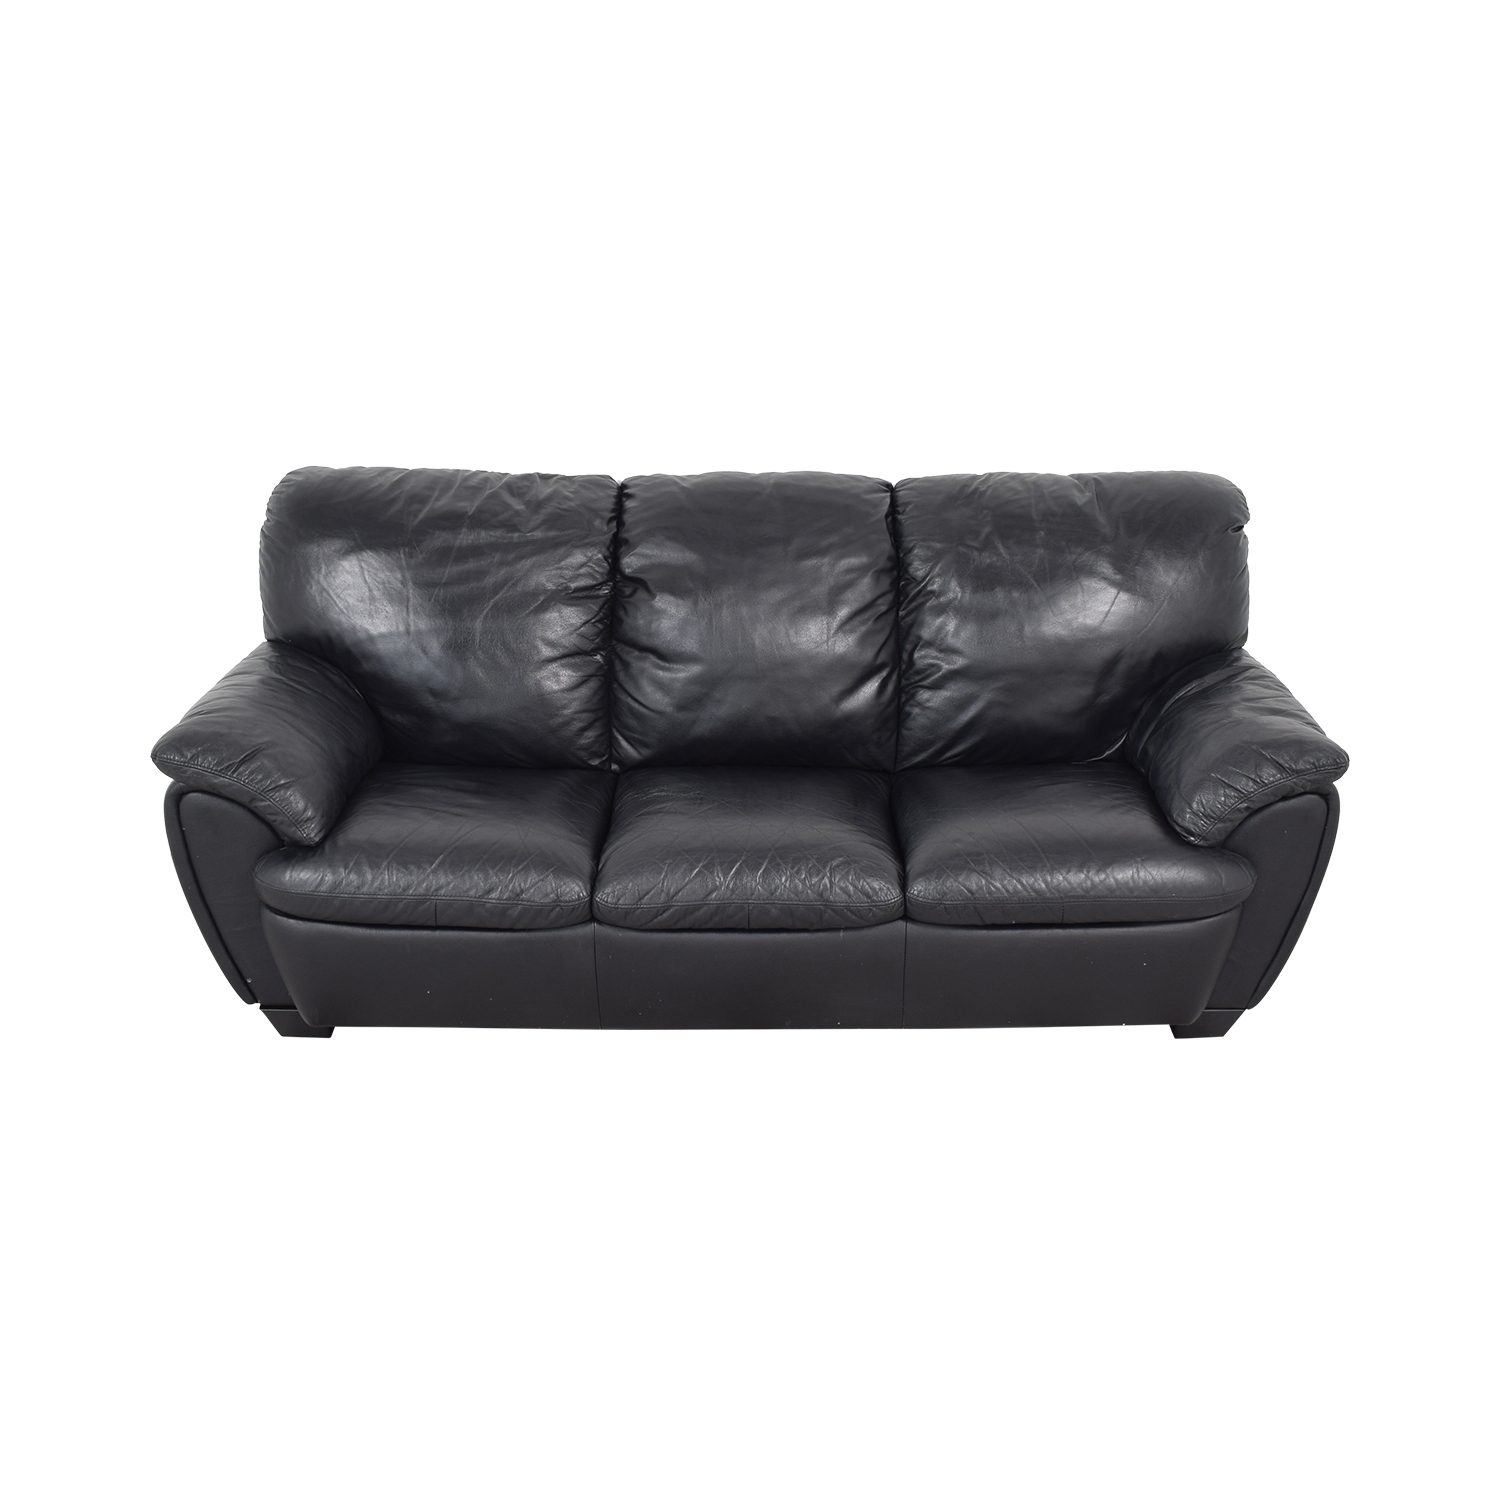 Broyhill Leather Sofa and Ottoman sale